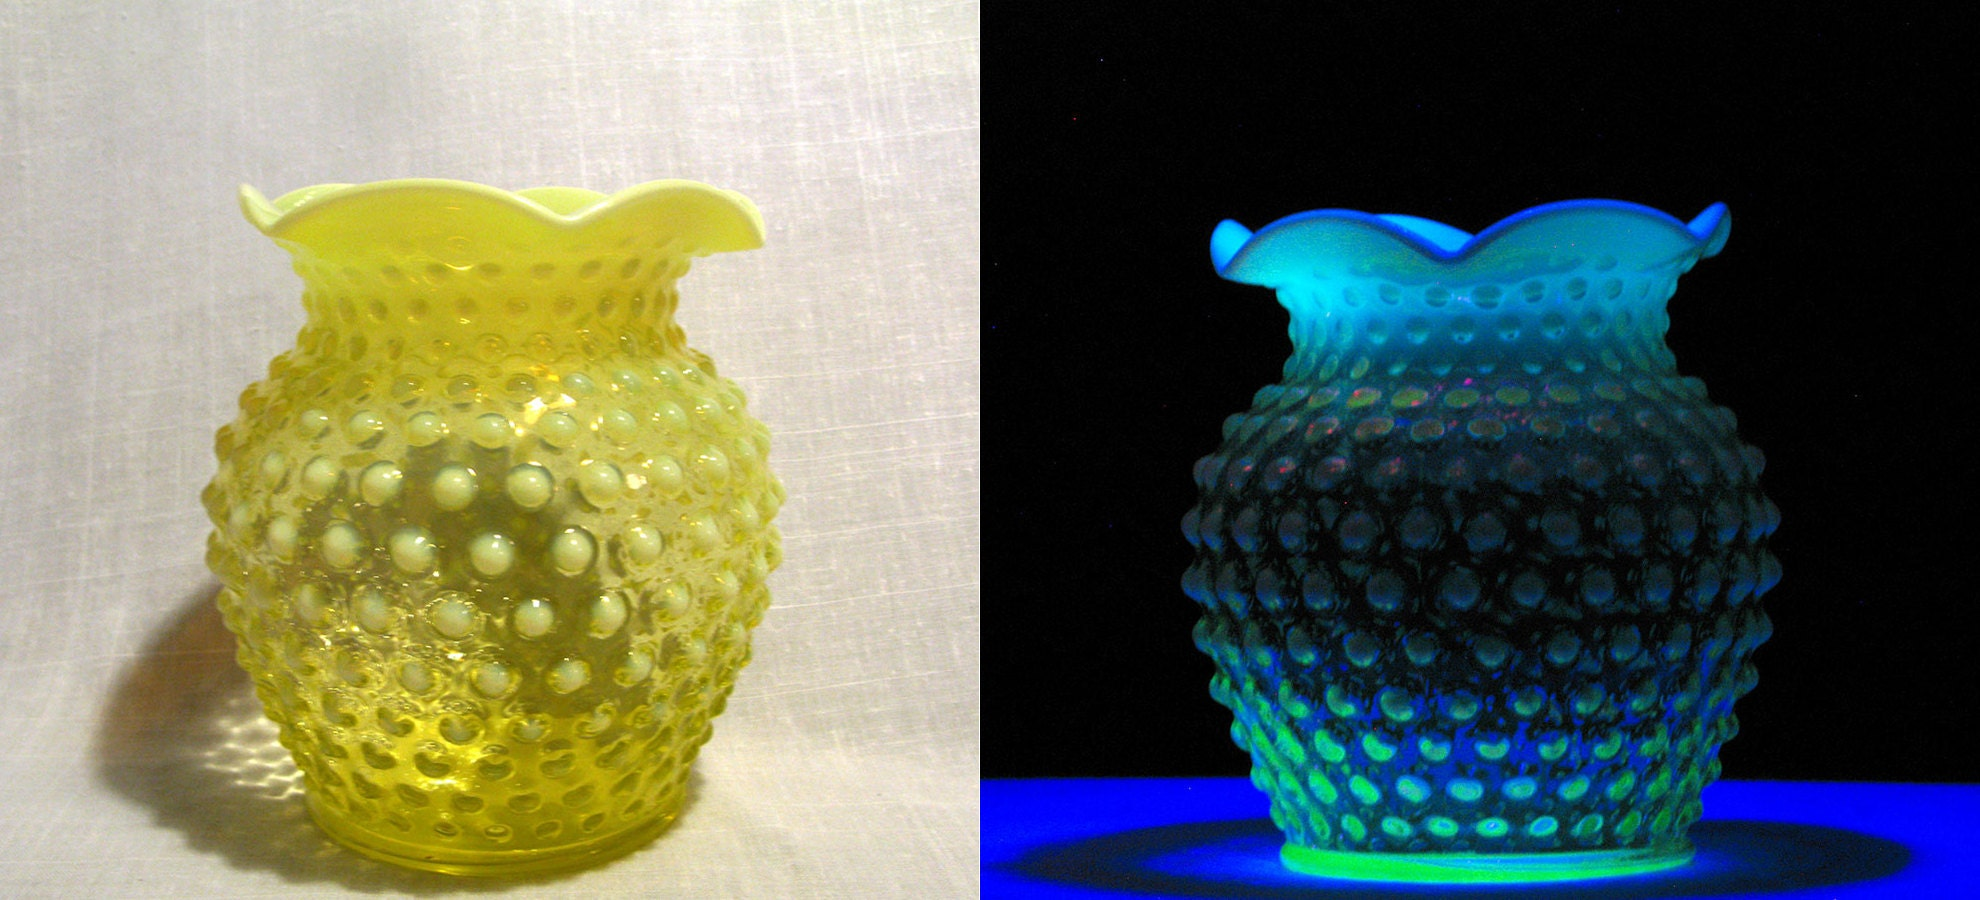 Imperial Glass Co Hobnail Vaseline Glass Vase in normal light (left) and under black light (right)